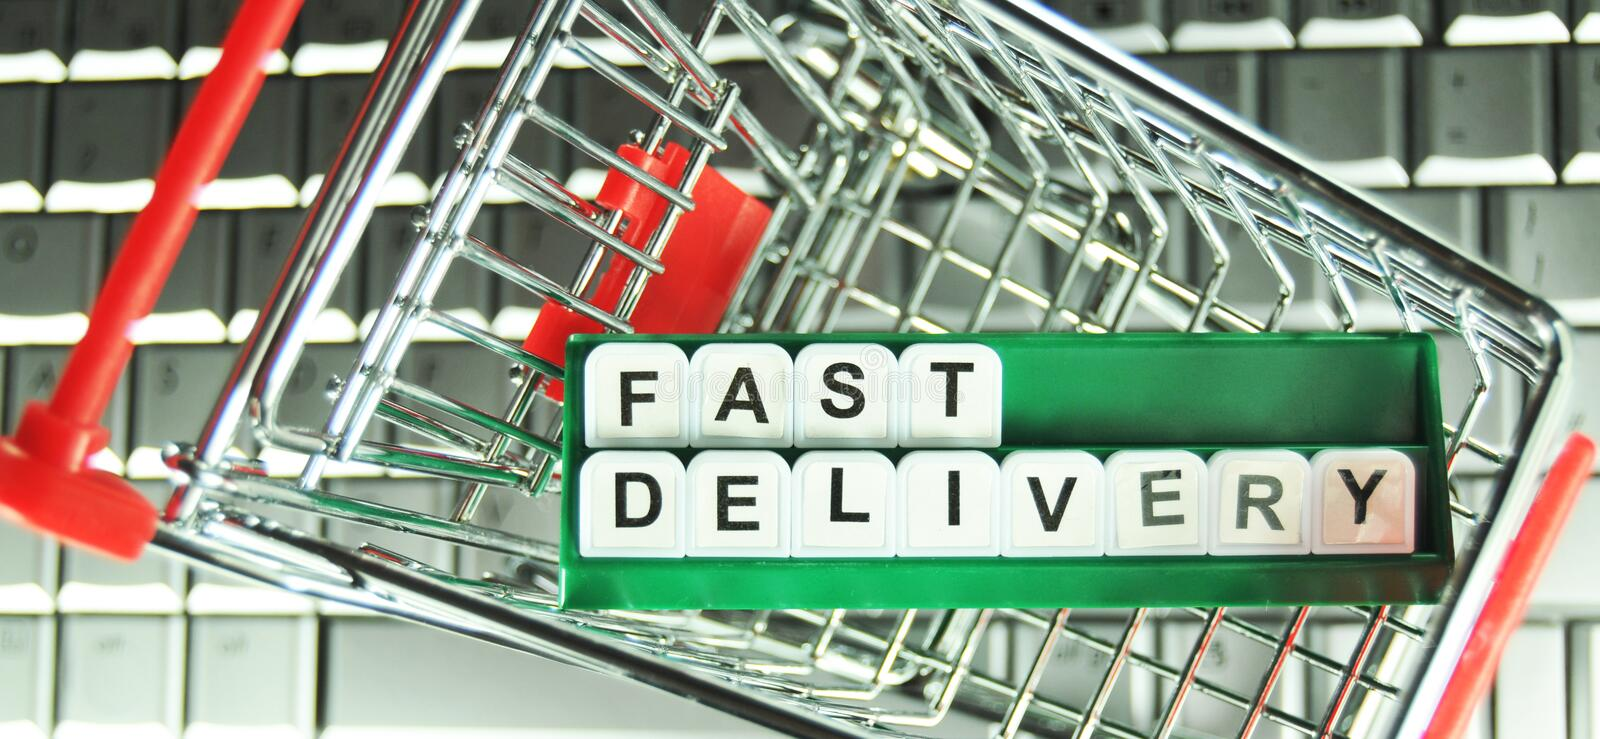 Download Fast delivery stock photo. Image of computer, handing - 15489108